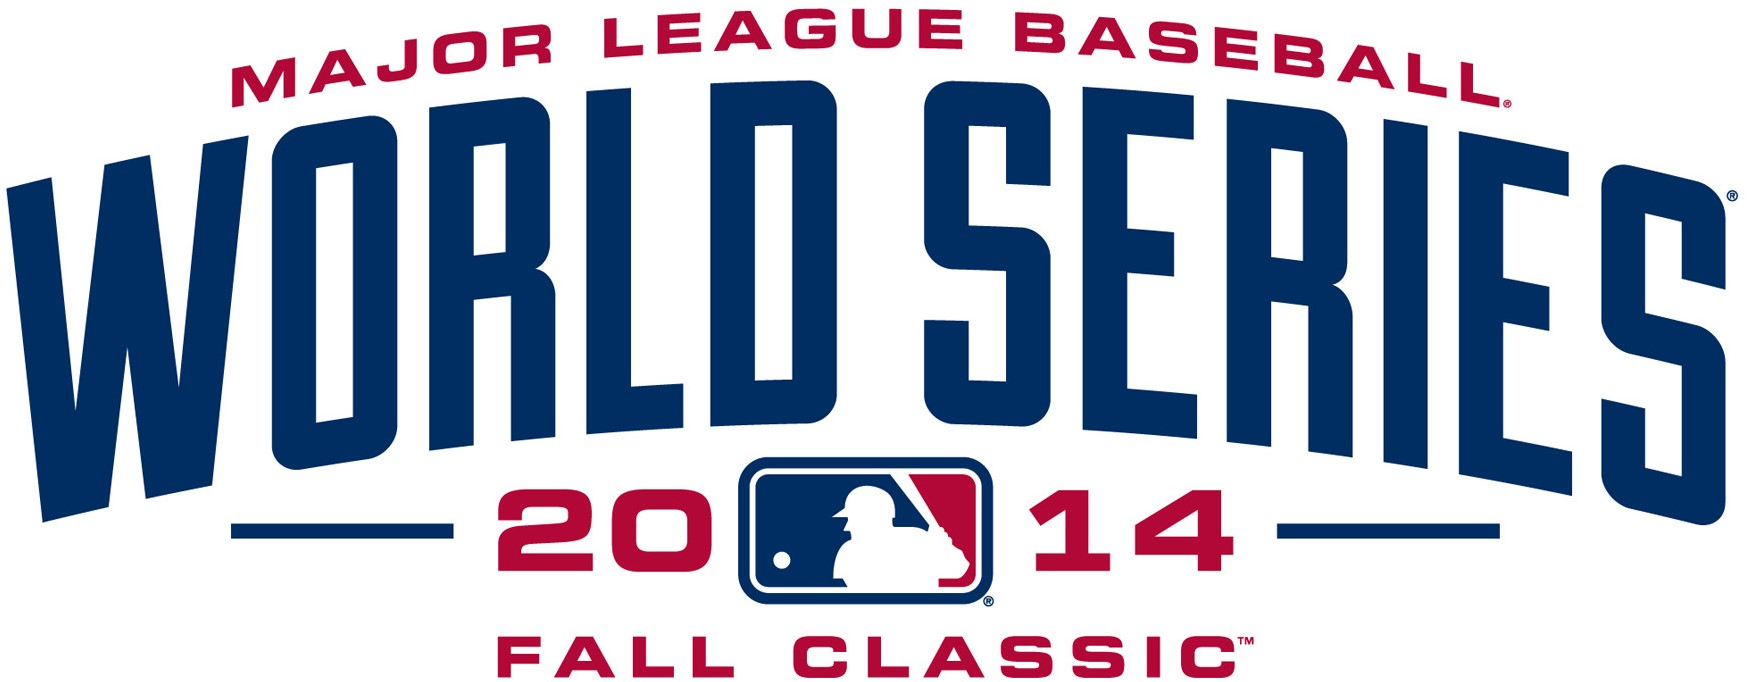 2014 World Series Schedule With Tv And Radio Announcers